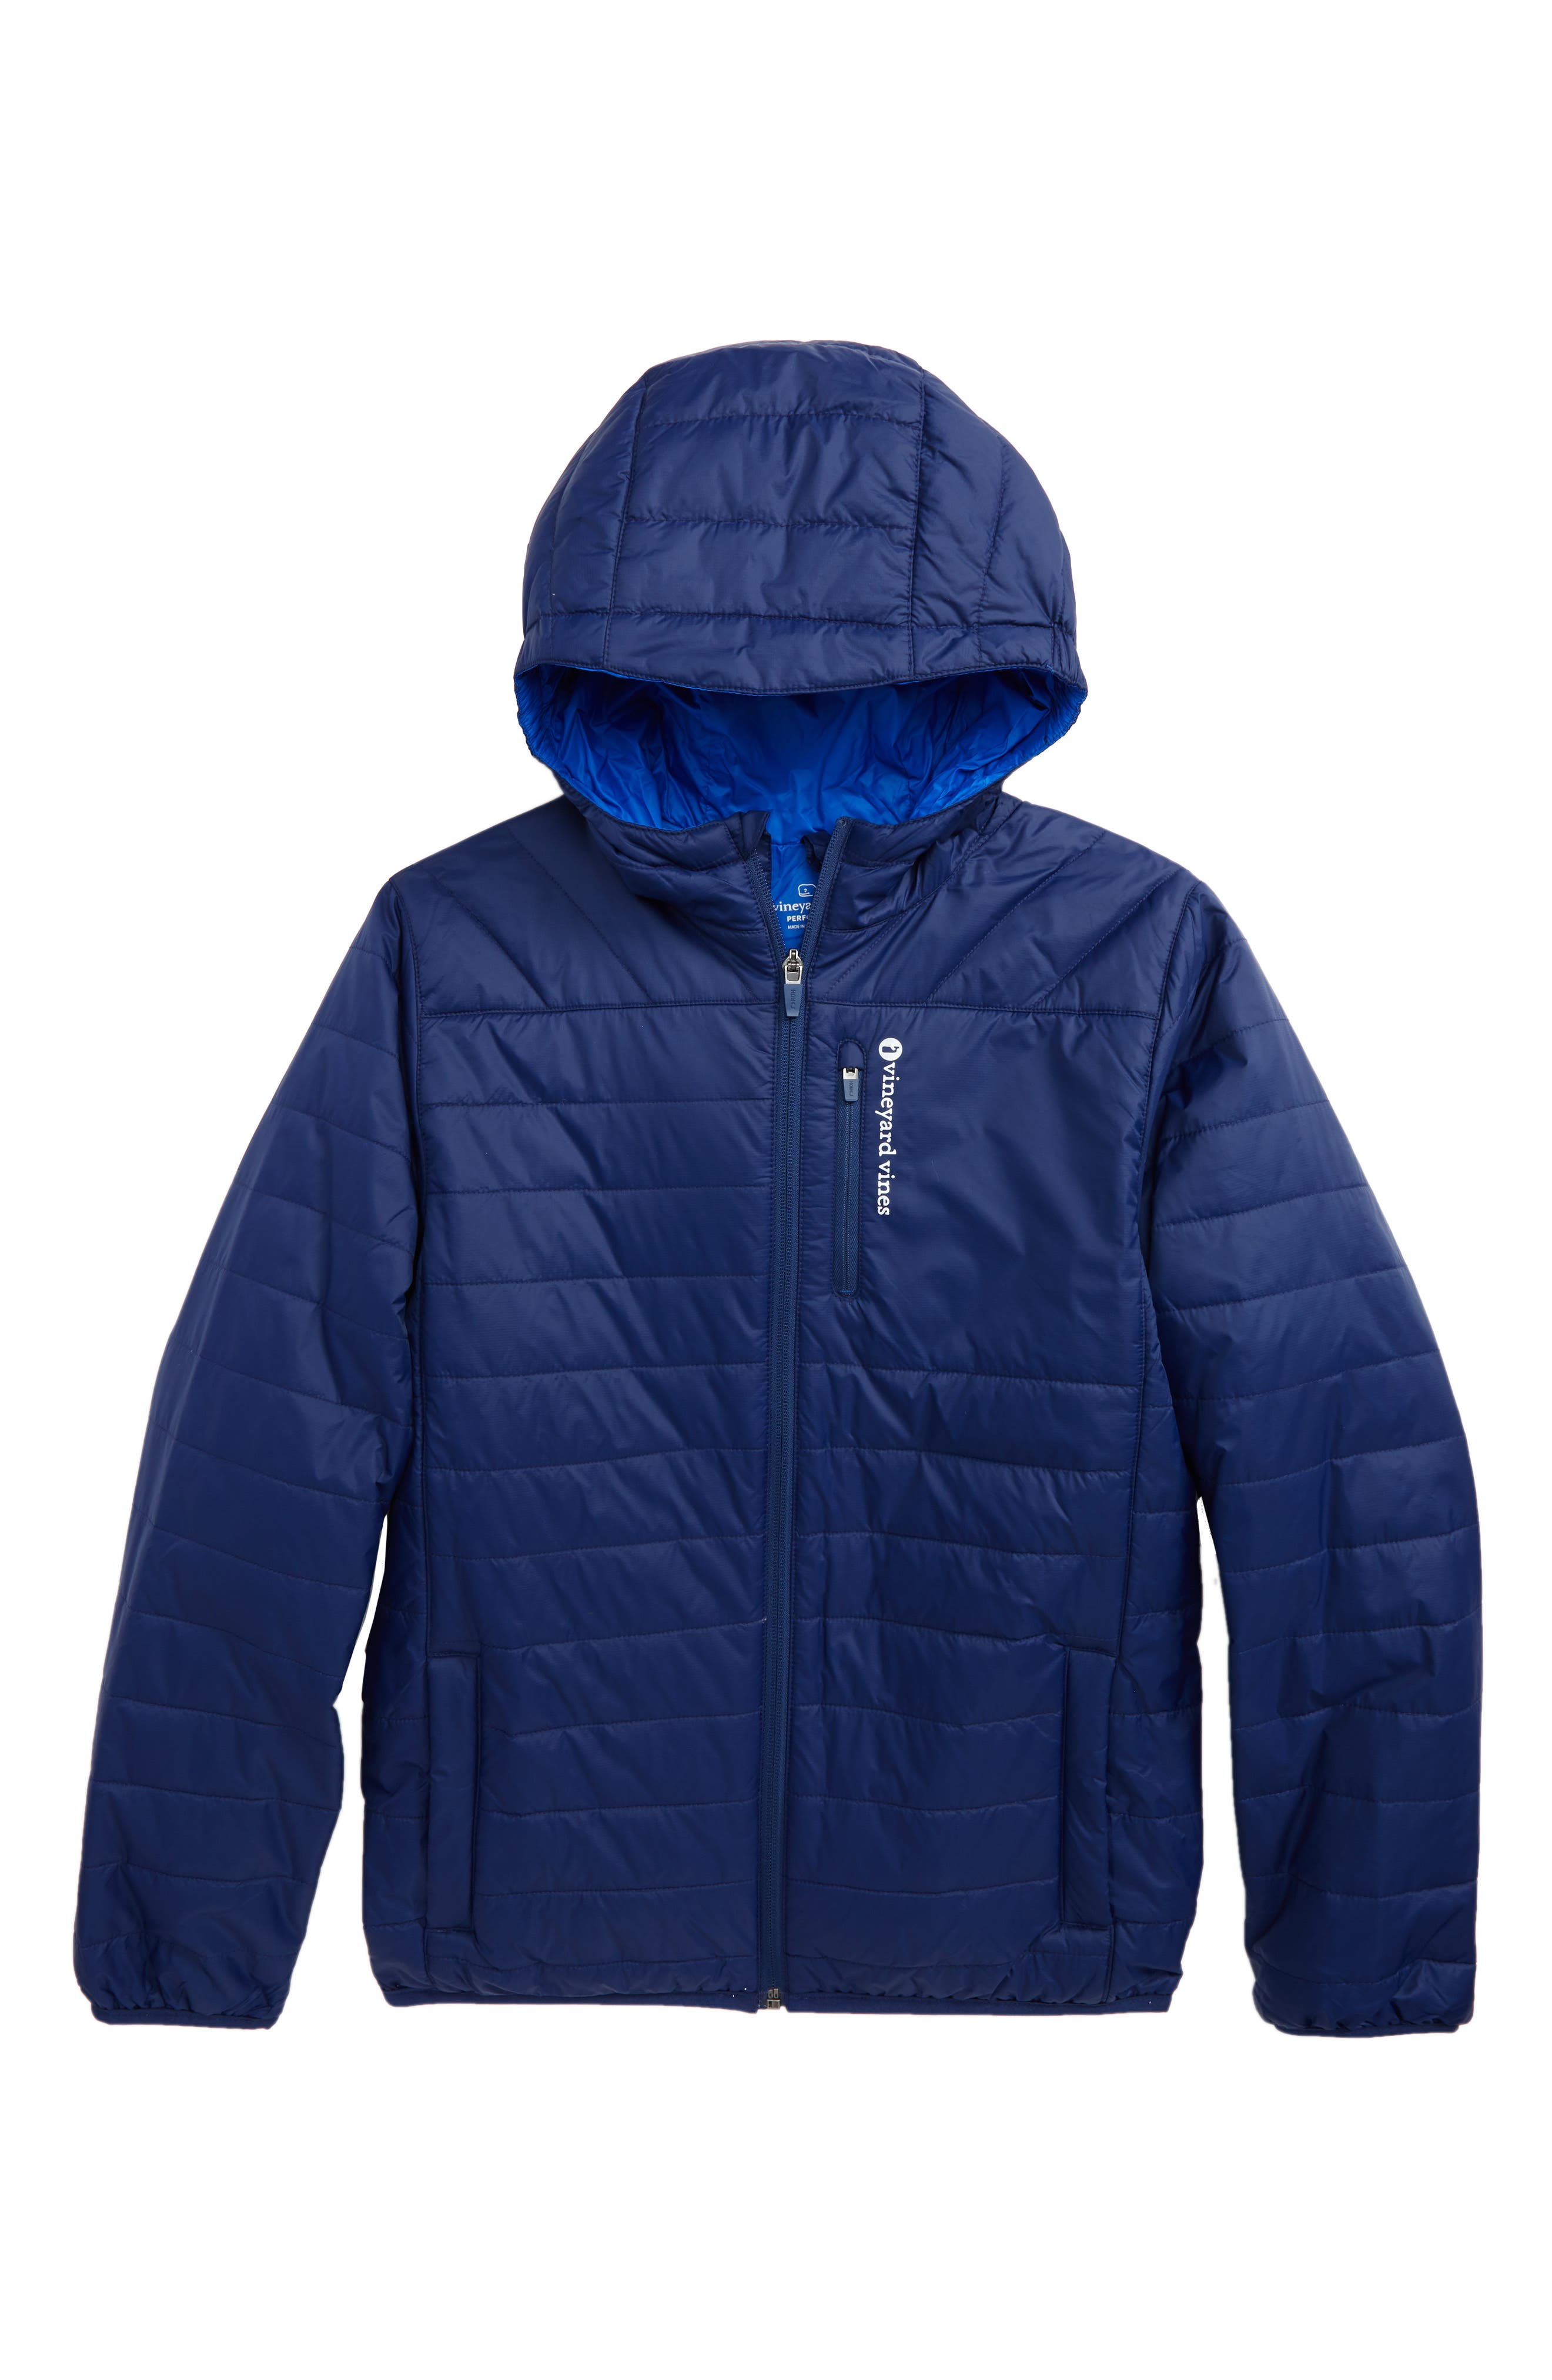 Water Resistant Hooded Jacket,                             Main thumbnail 1, color,                             400